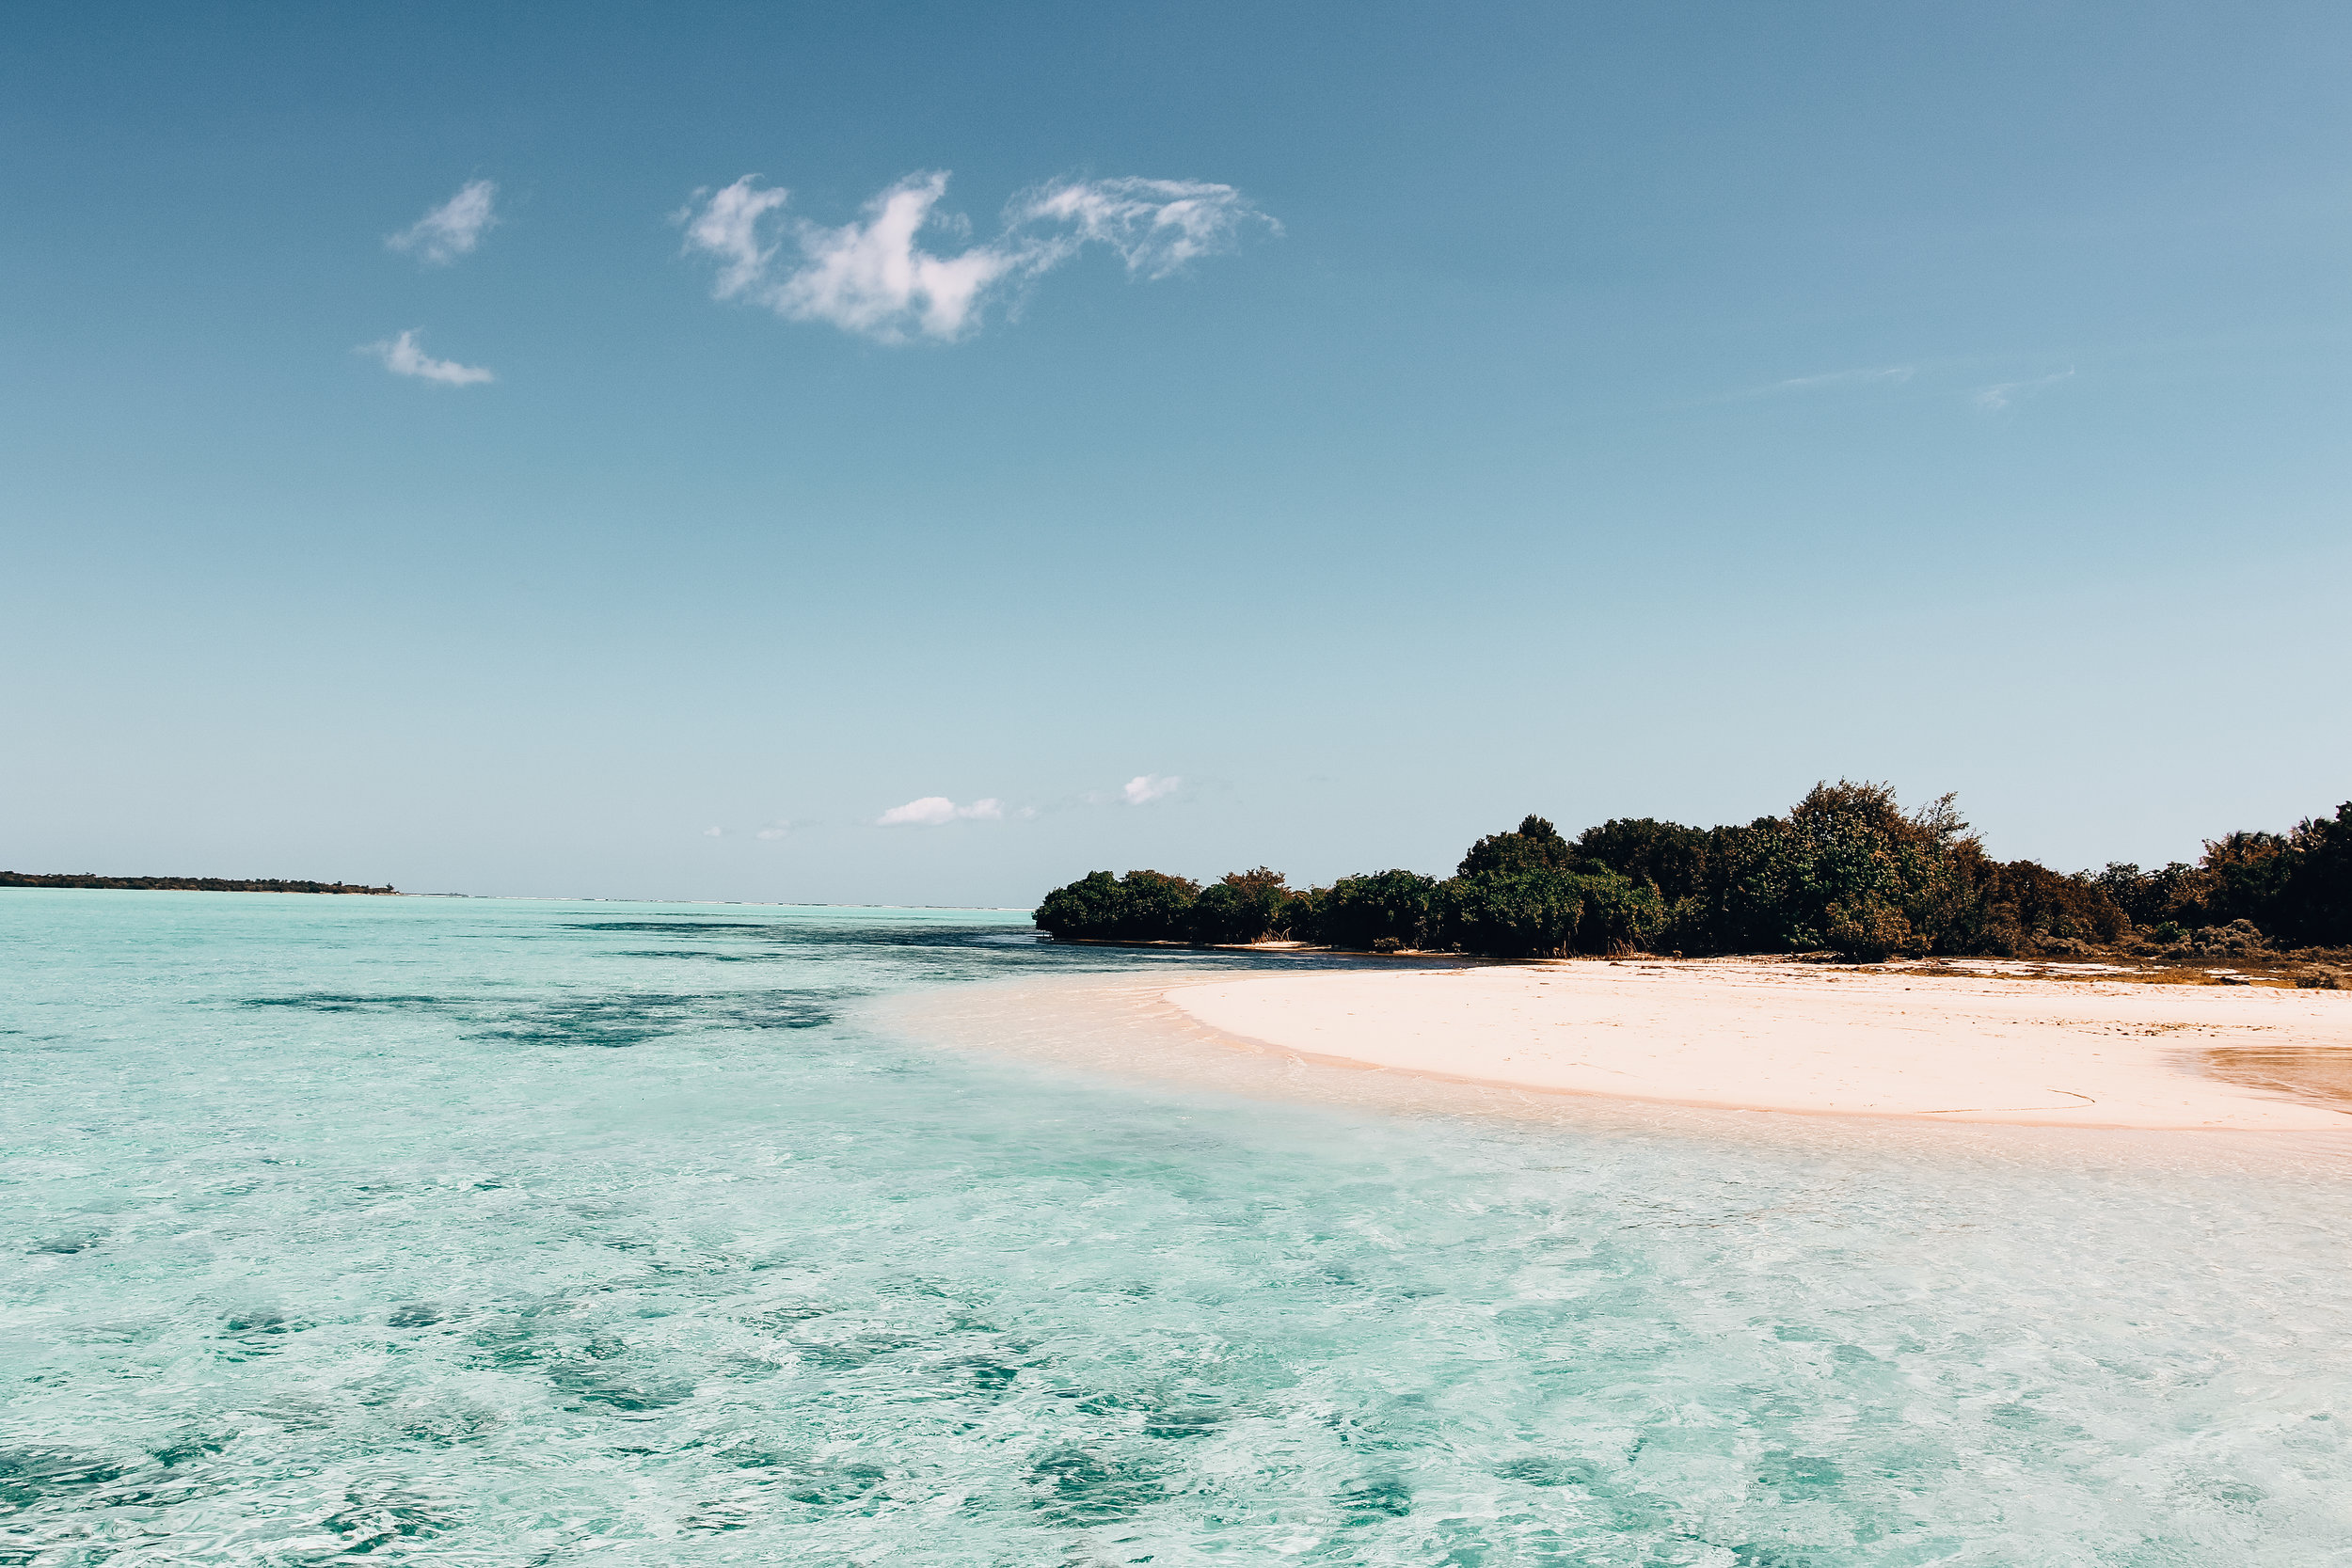 THE BEST BEACHES - Whether you're sunning yourself on Seven Mile Beach or wading in the calm waters in Cayman Kai, we show you the cream of the crop when it comes to beaches.